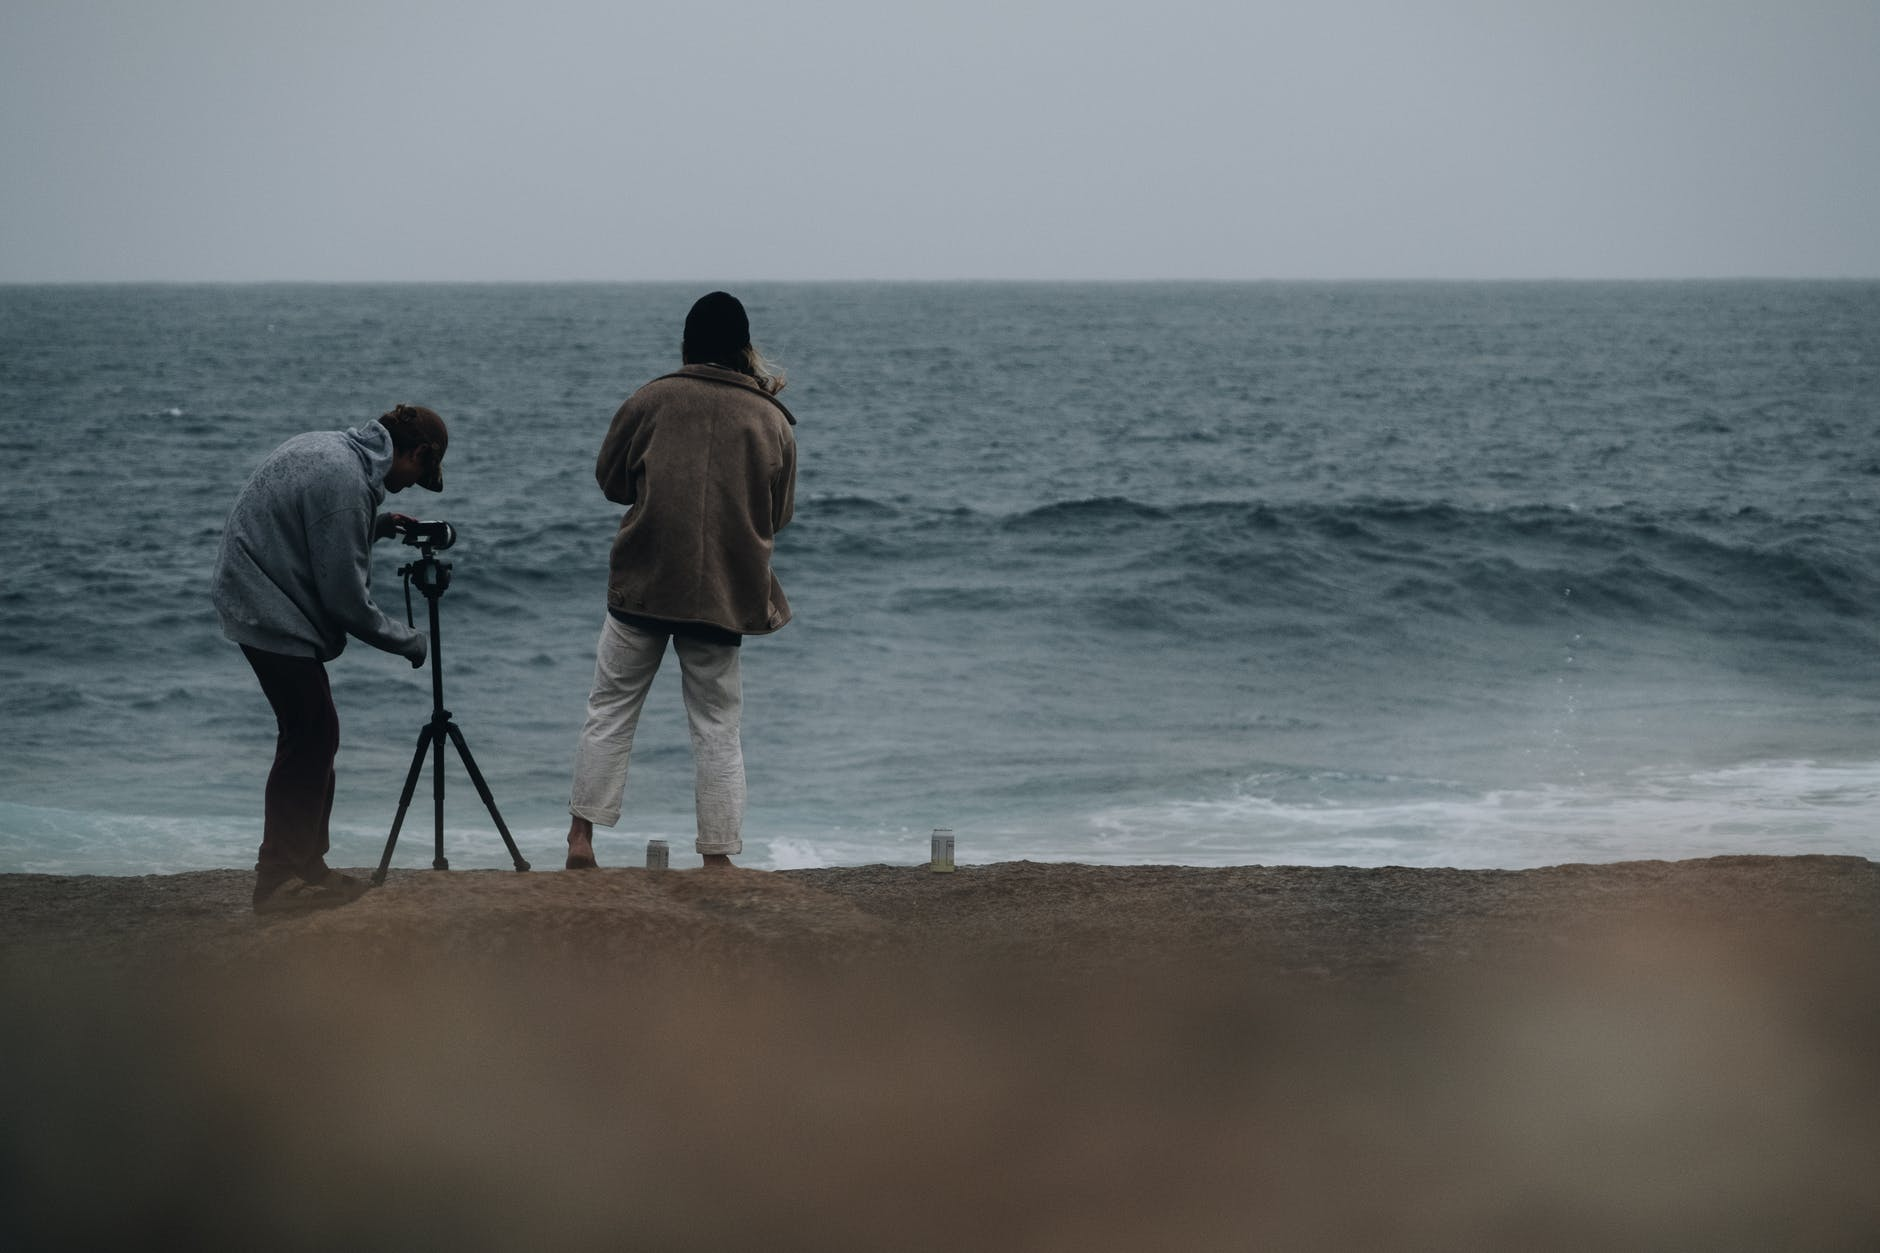 photographers shooting wavy ocean in cloudy day in daylight